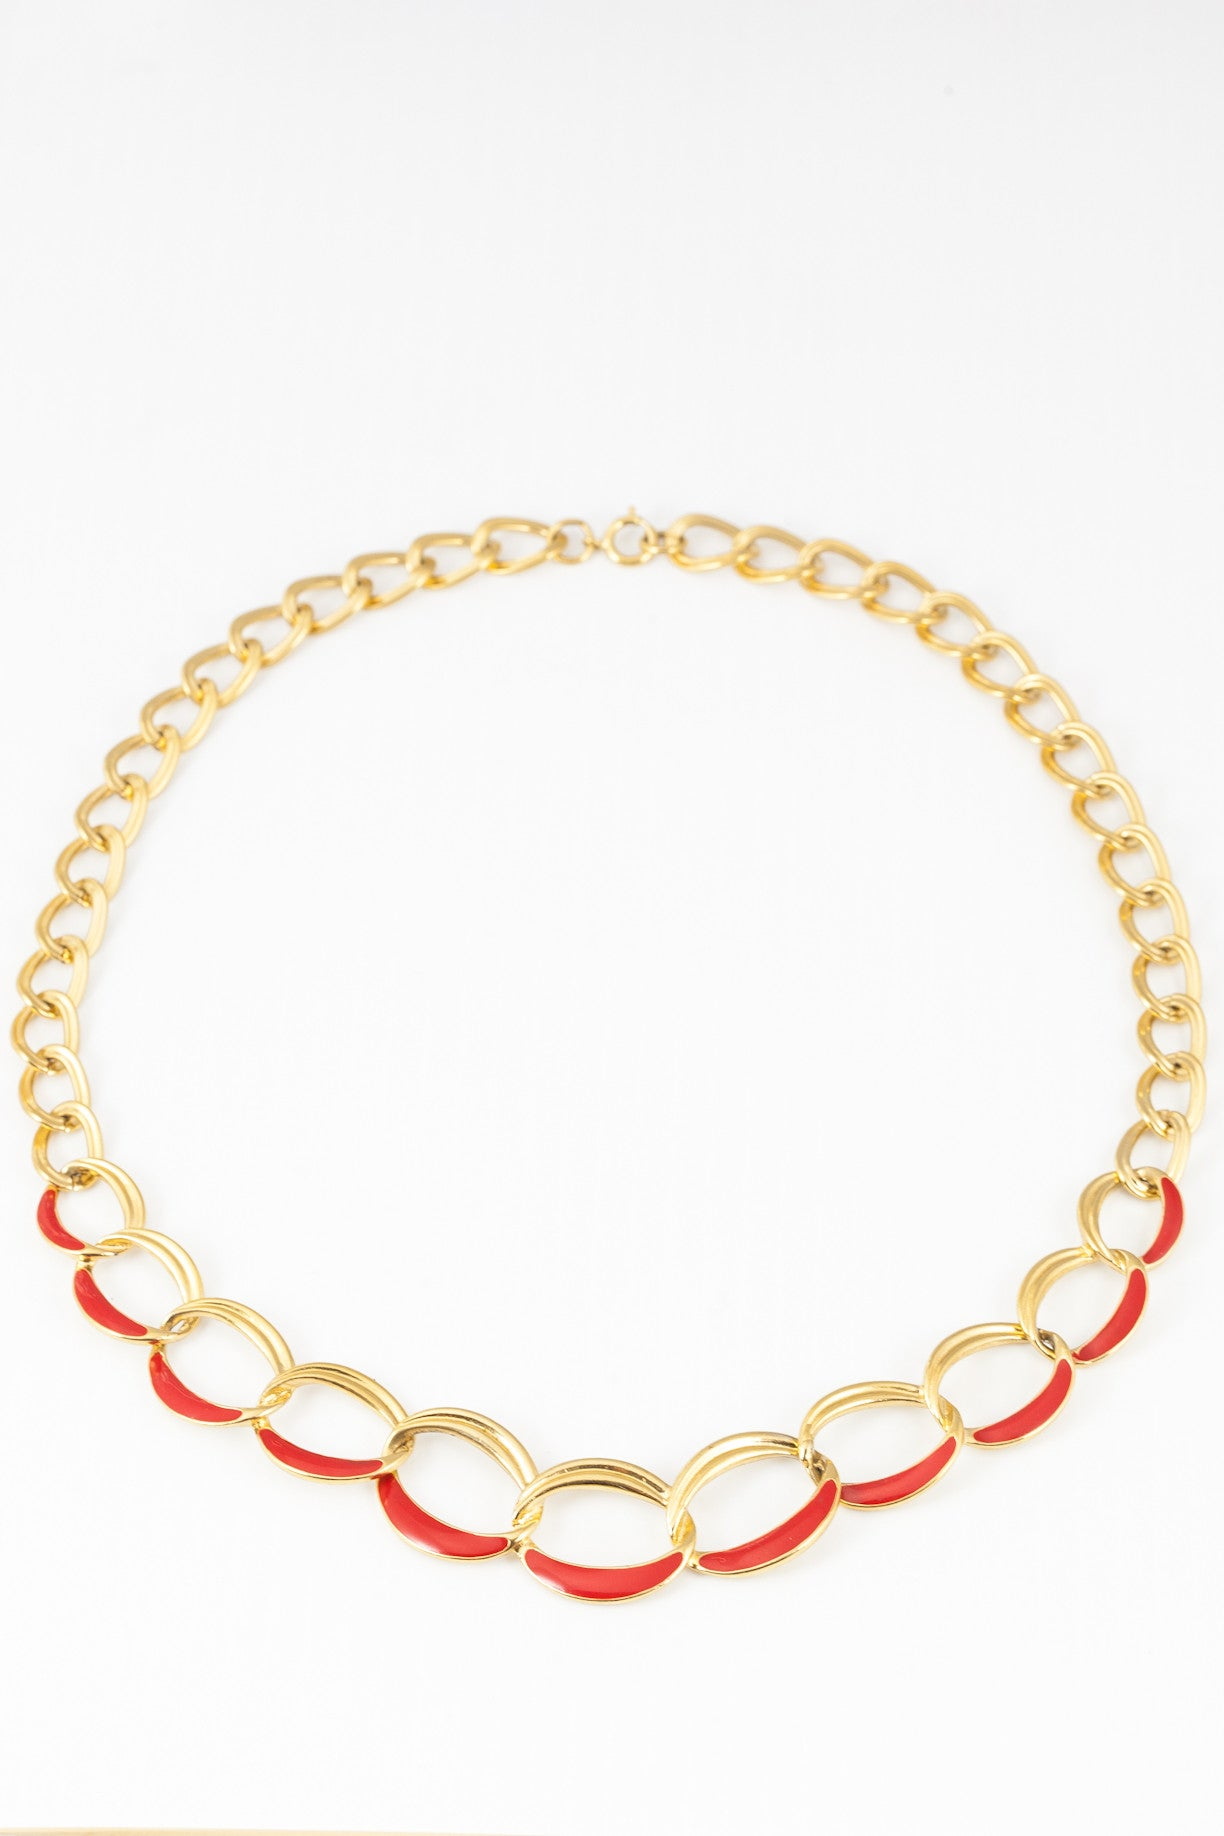 70's__Trifari__Red Enamel Link Necklace